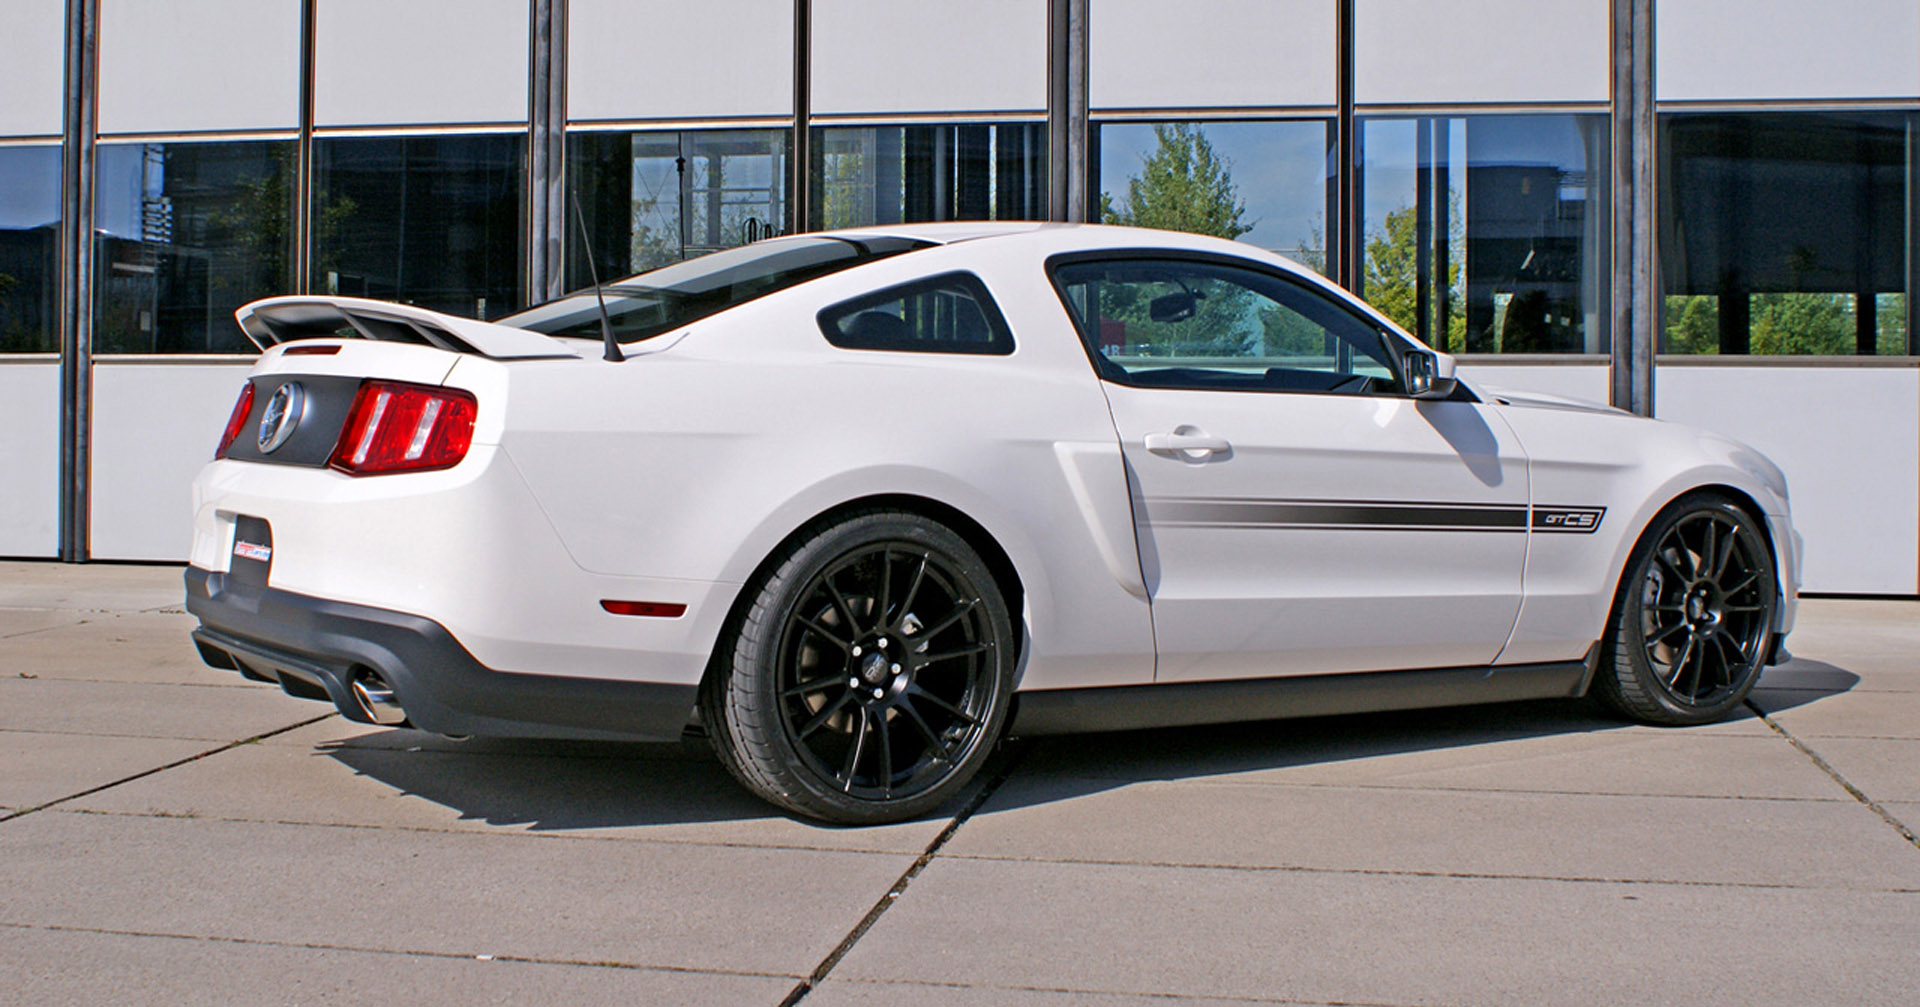 Geigercars De Charges The 2011 Mustang With Compressor Power